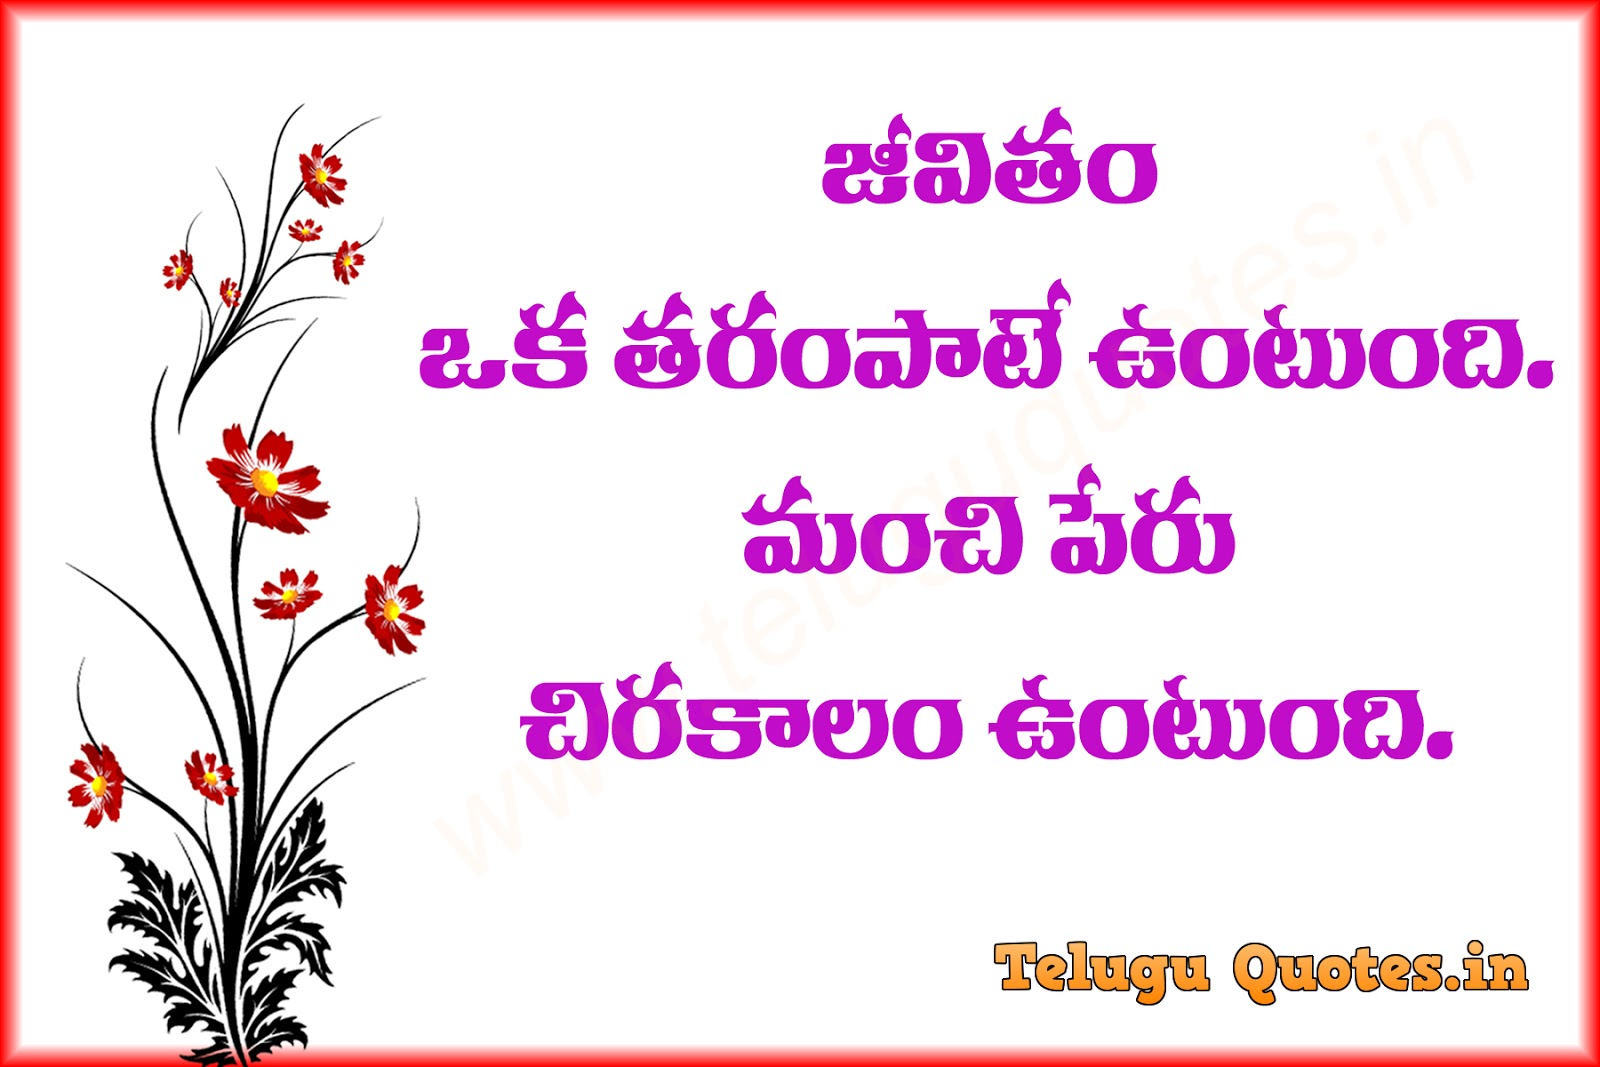 Good Quotes About Love And Friendship Telugu Best Life Quotes  Motivated Quotes  Telugu Quotes.in